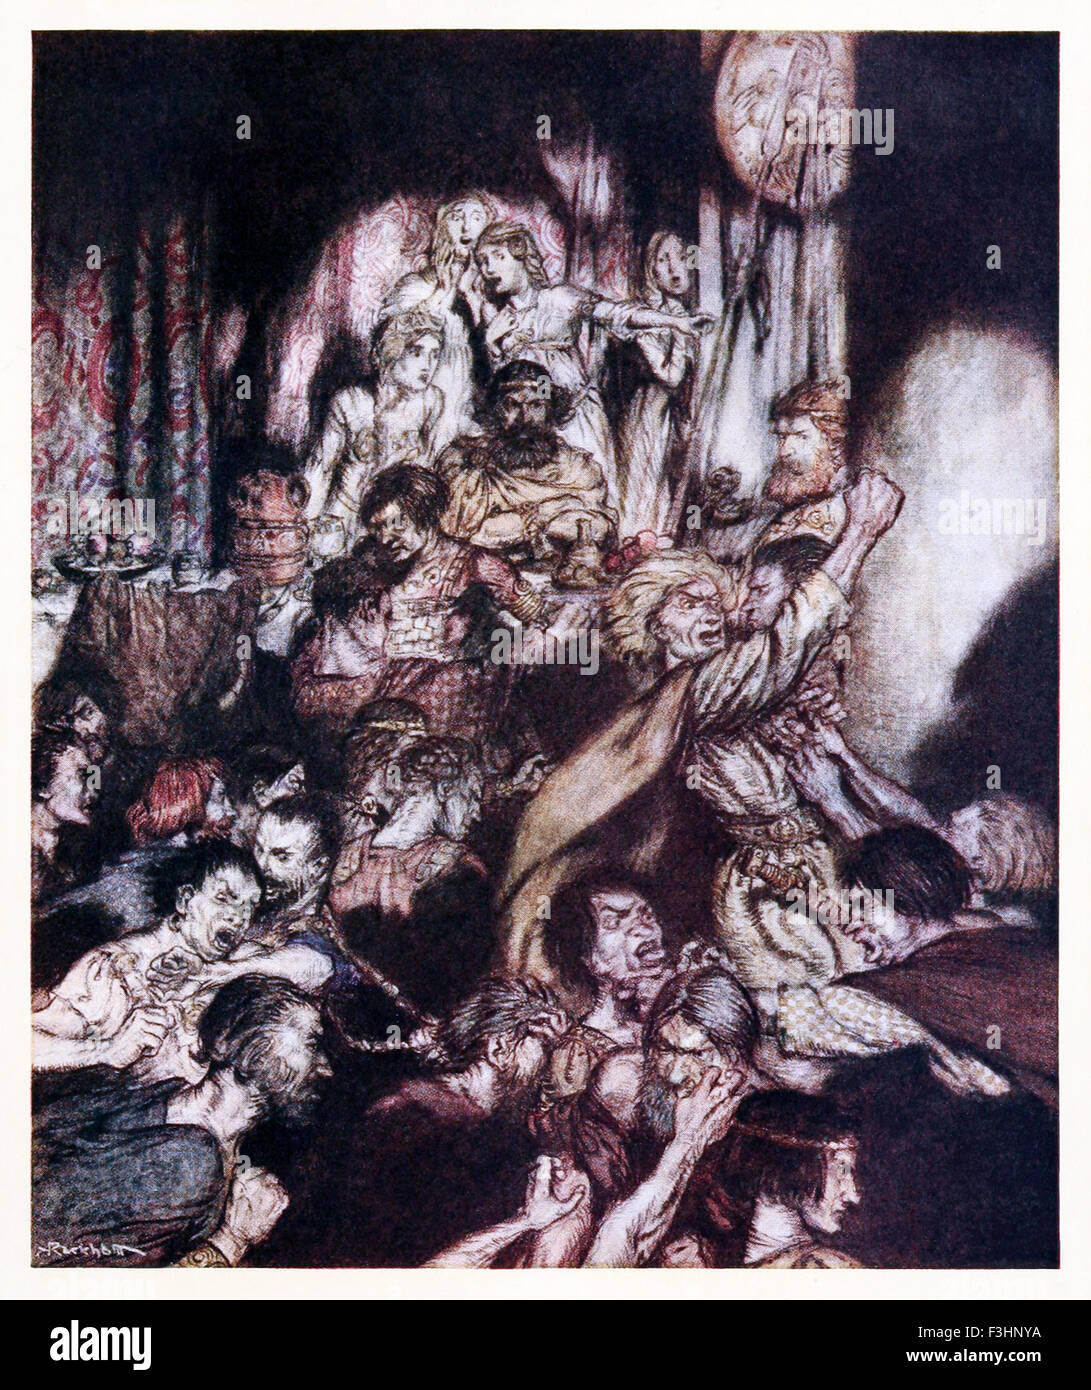 'The banqueting hall was in tumult.' from 'The Little Brawl' in 'Irish Fairy Tales', illustration - Stock Image